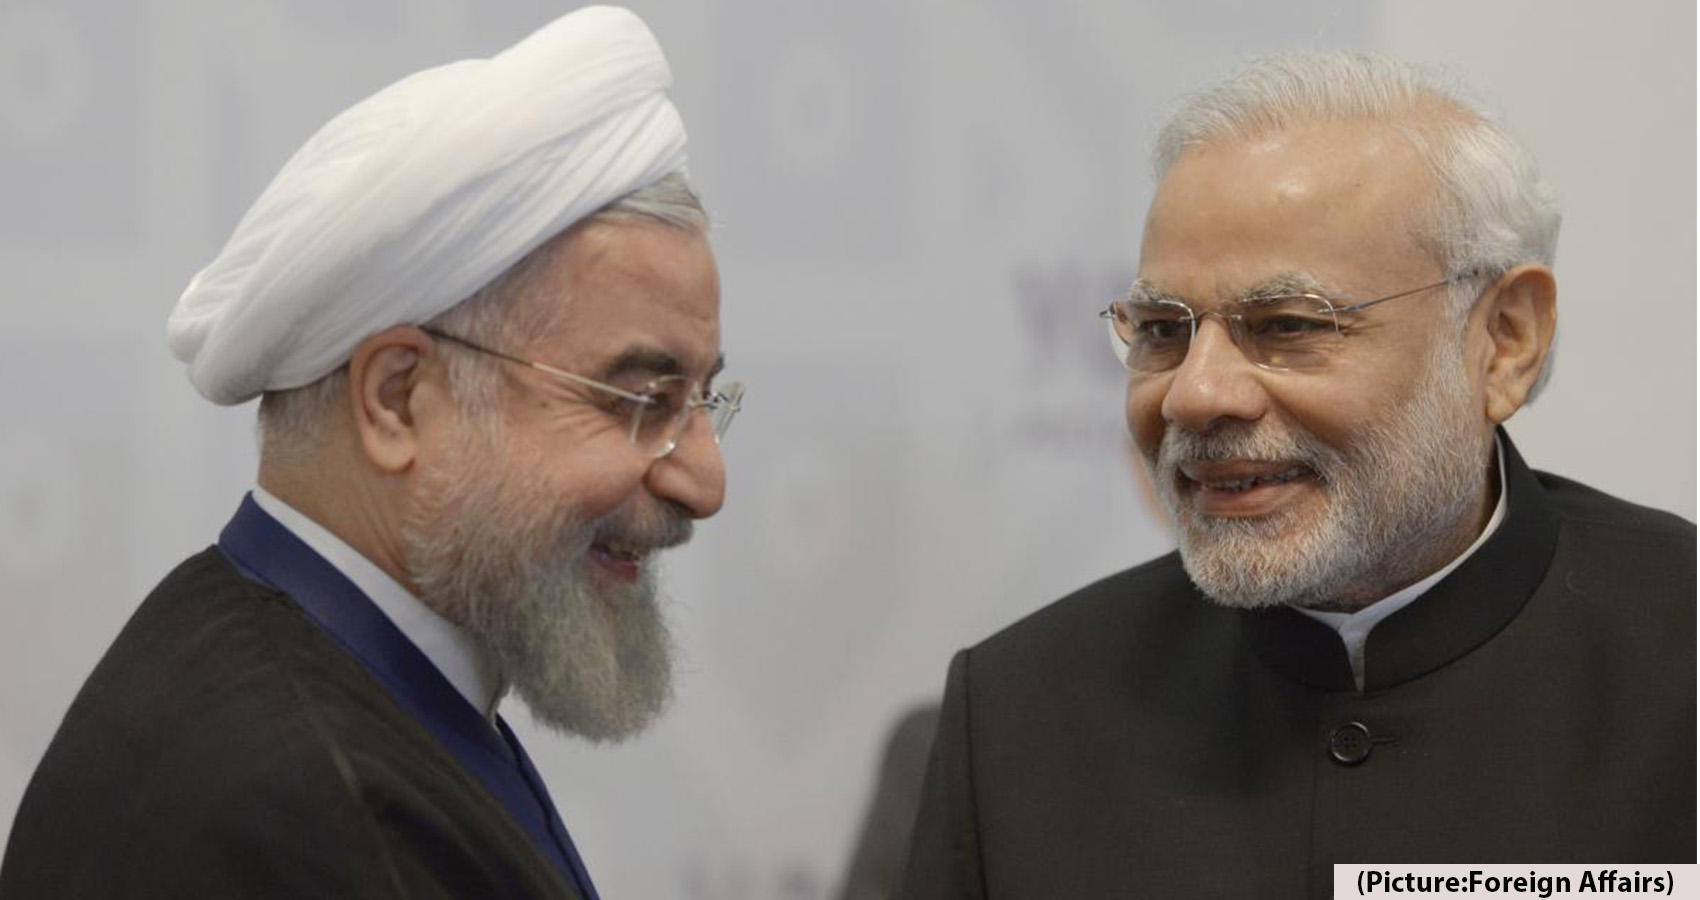 Ebrahim Raisi And India's Bet On Iran The U.S. Afghanistan pullout and other geopolitical shifts are aligning New Delhi with Tehran.